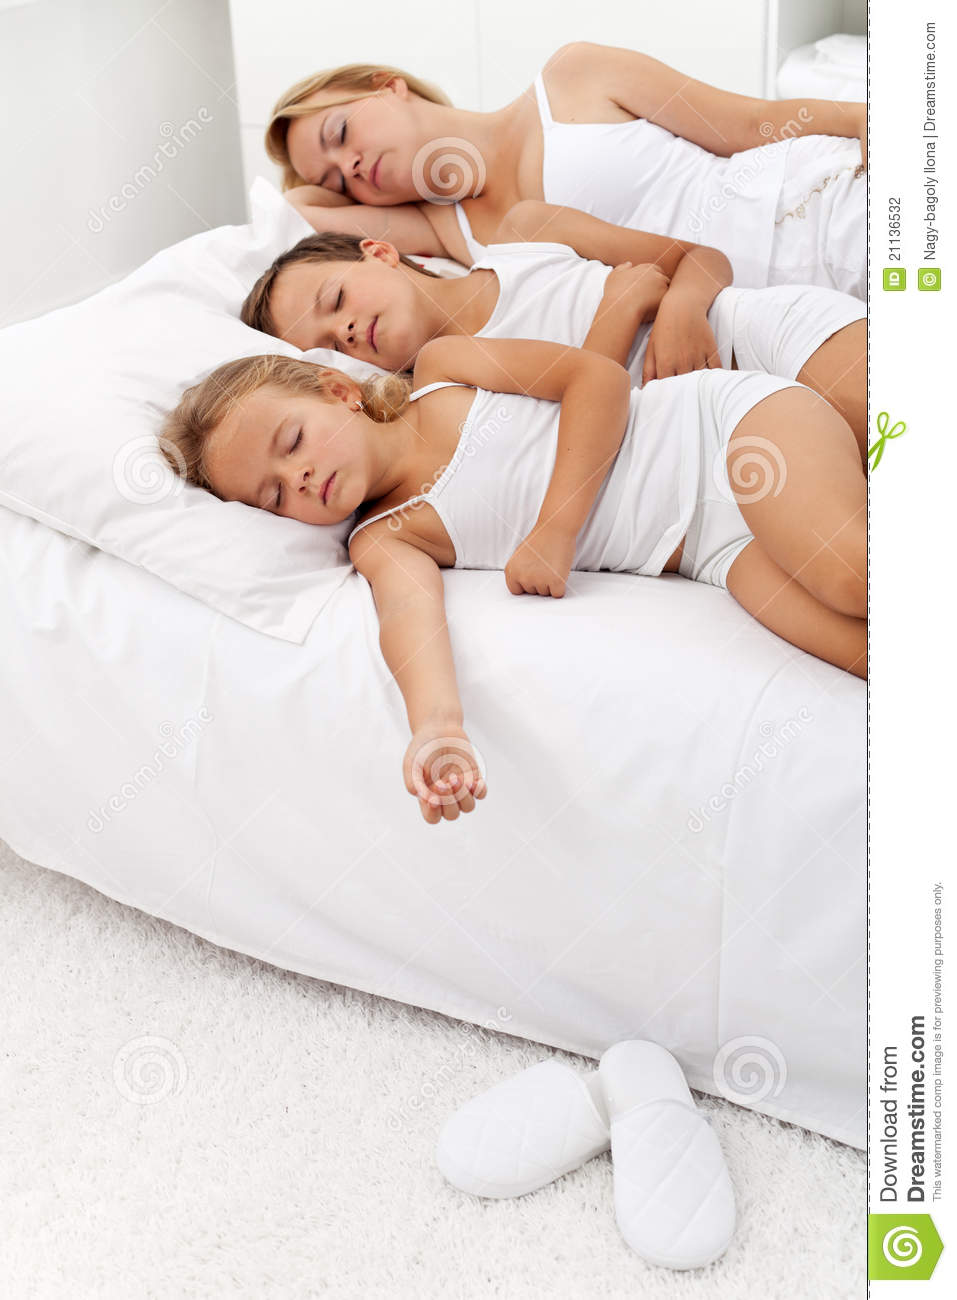 Healthy People Taking A Nap Stock Photography   Image  21136532